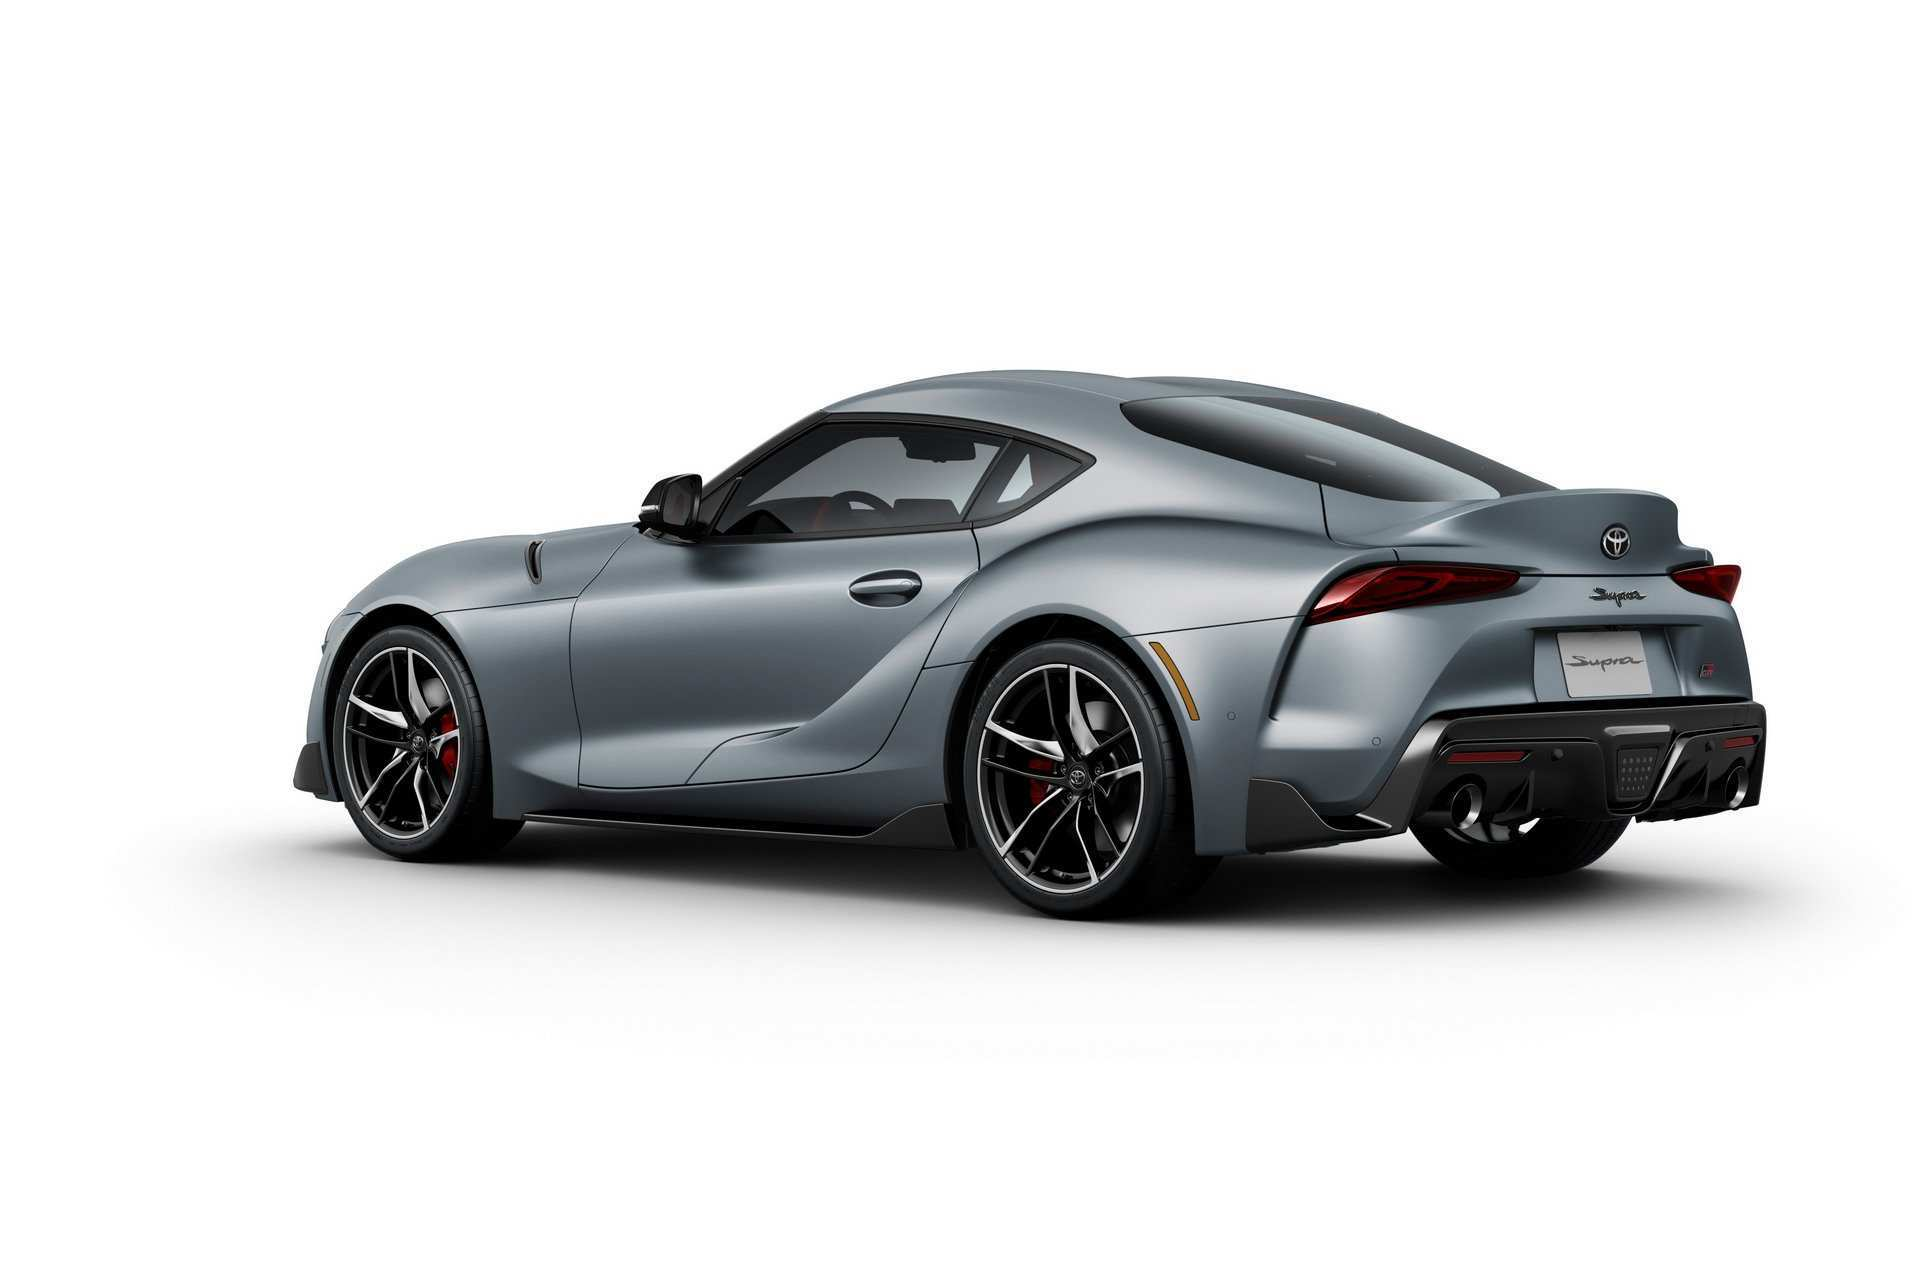 36 All New Cost Of 2020 Toyota Supra Pictures with Cost Of 2020 Toyota Supra